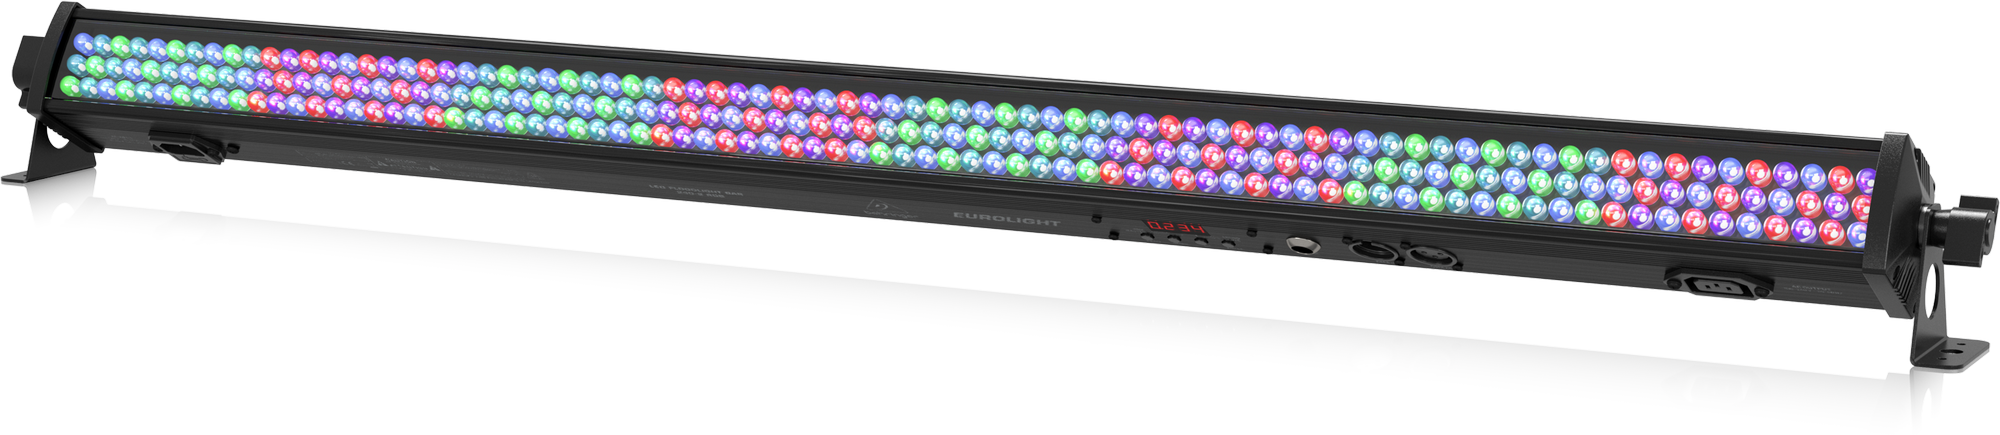 Behringer - X2C - CREA LED FLOODLIGHT BAR 240-8 RGB-EU